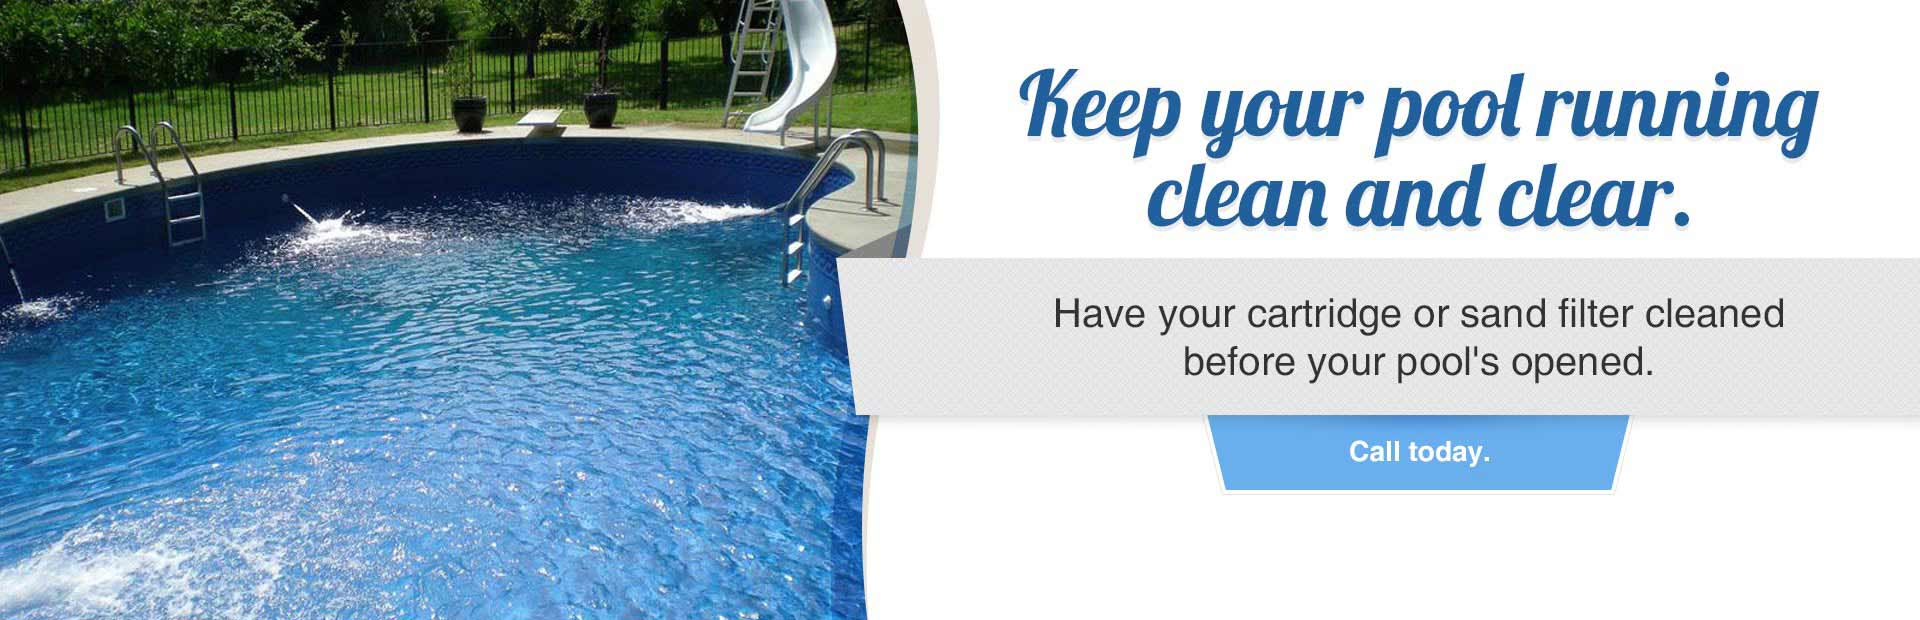 Have Your Cartridge or Sand Filter Cleaned